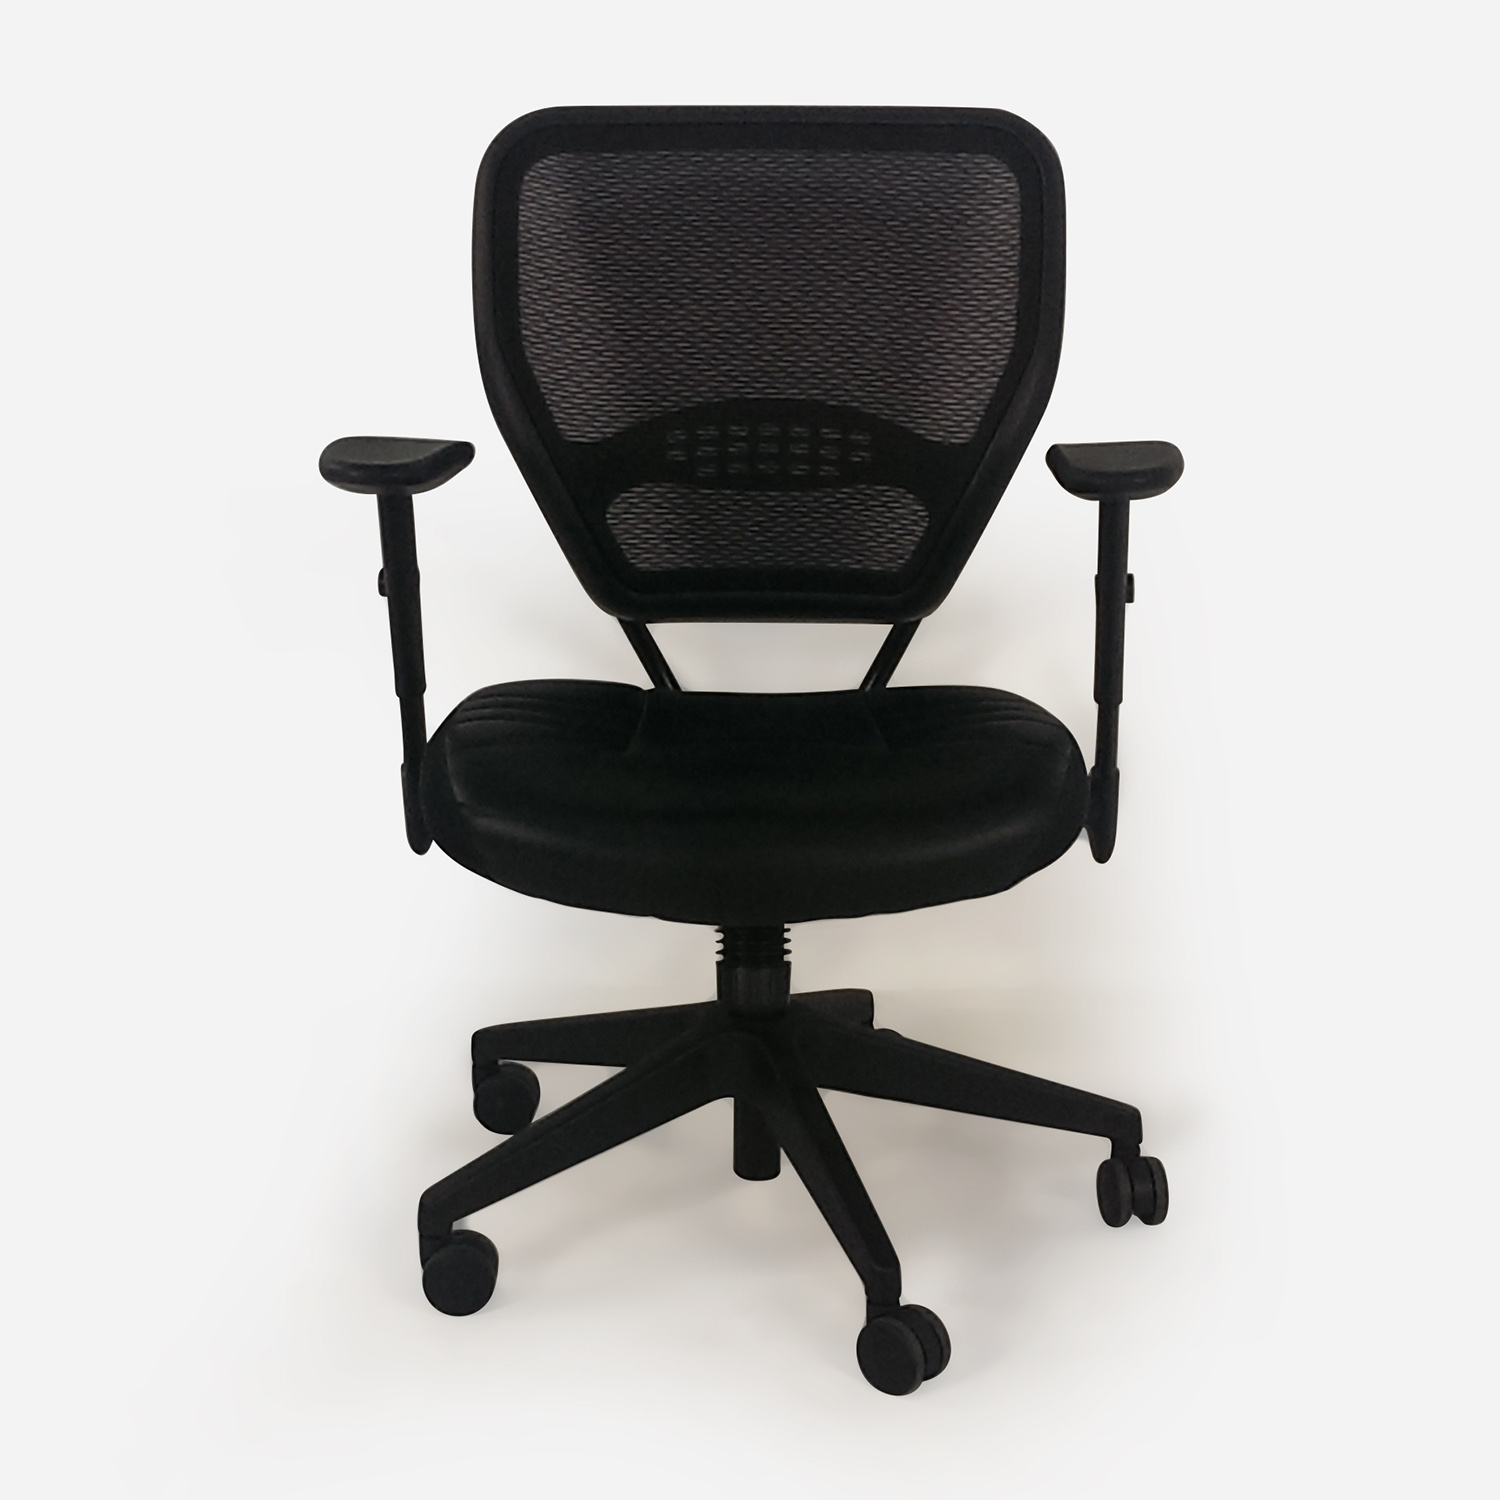 Black Leather Office Chair price